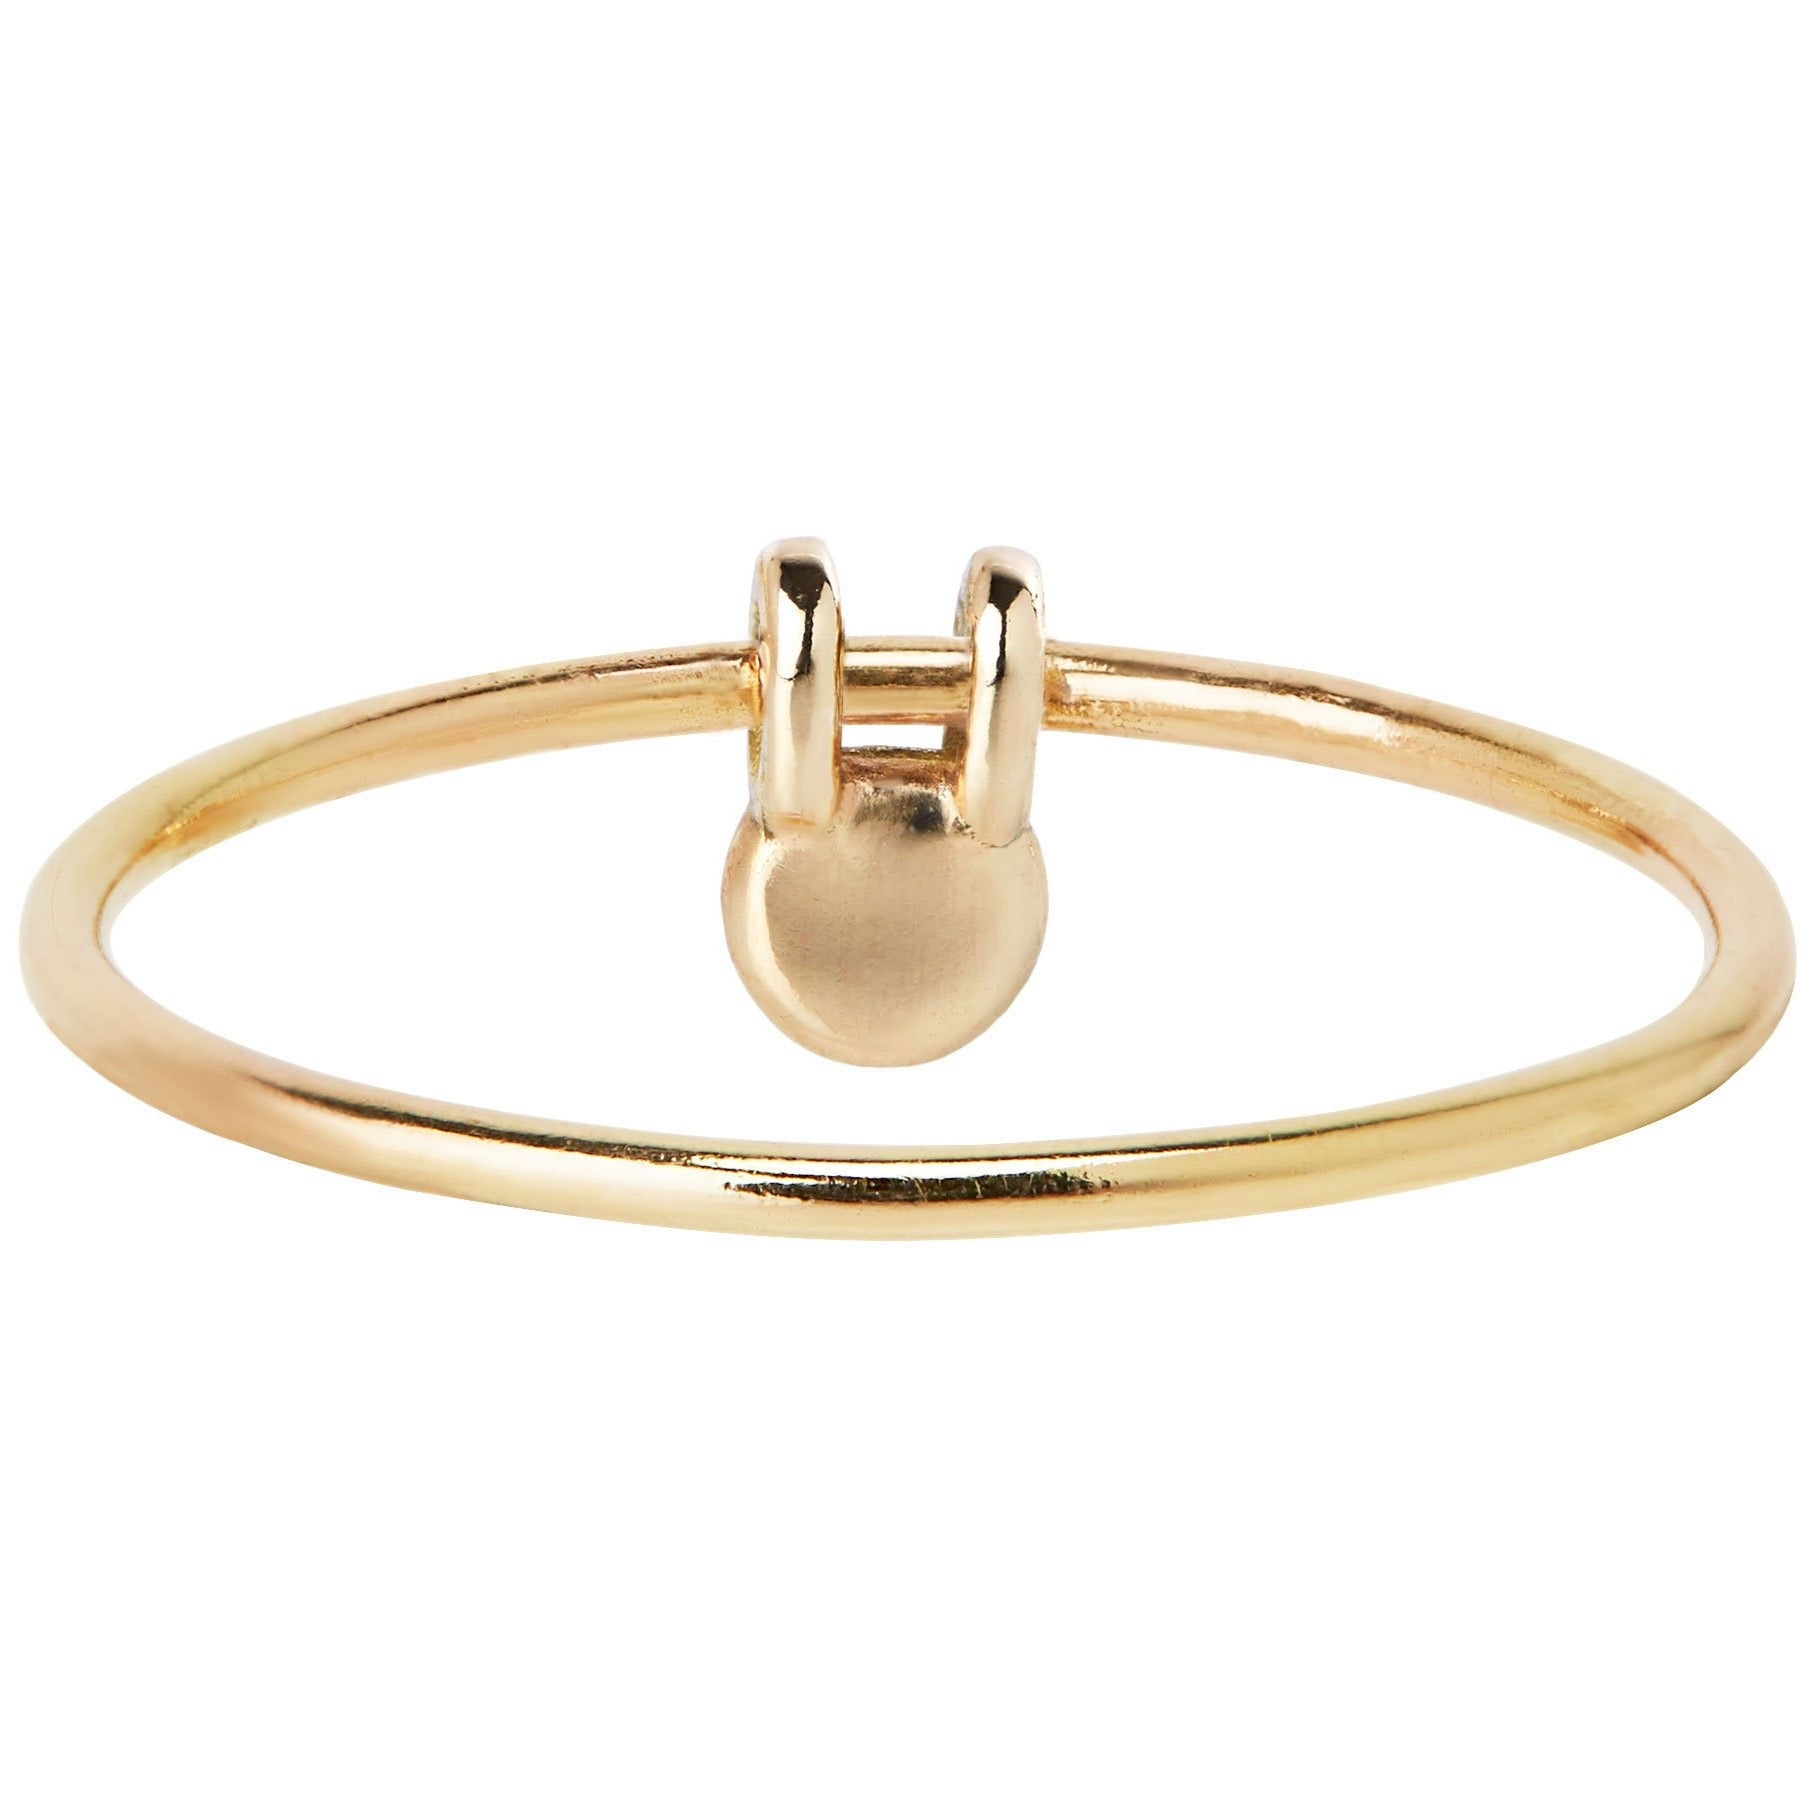 LUCKY RABBIT RING - 14K YELLOW GOLD